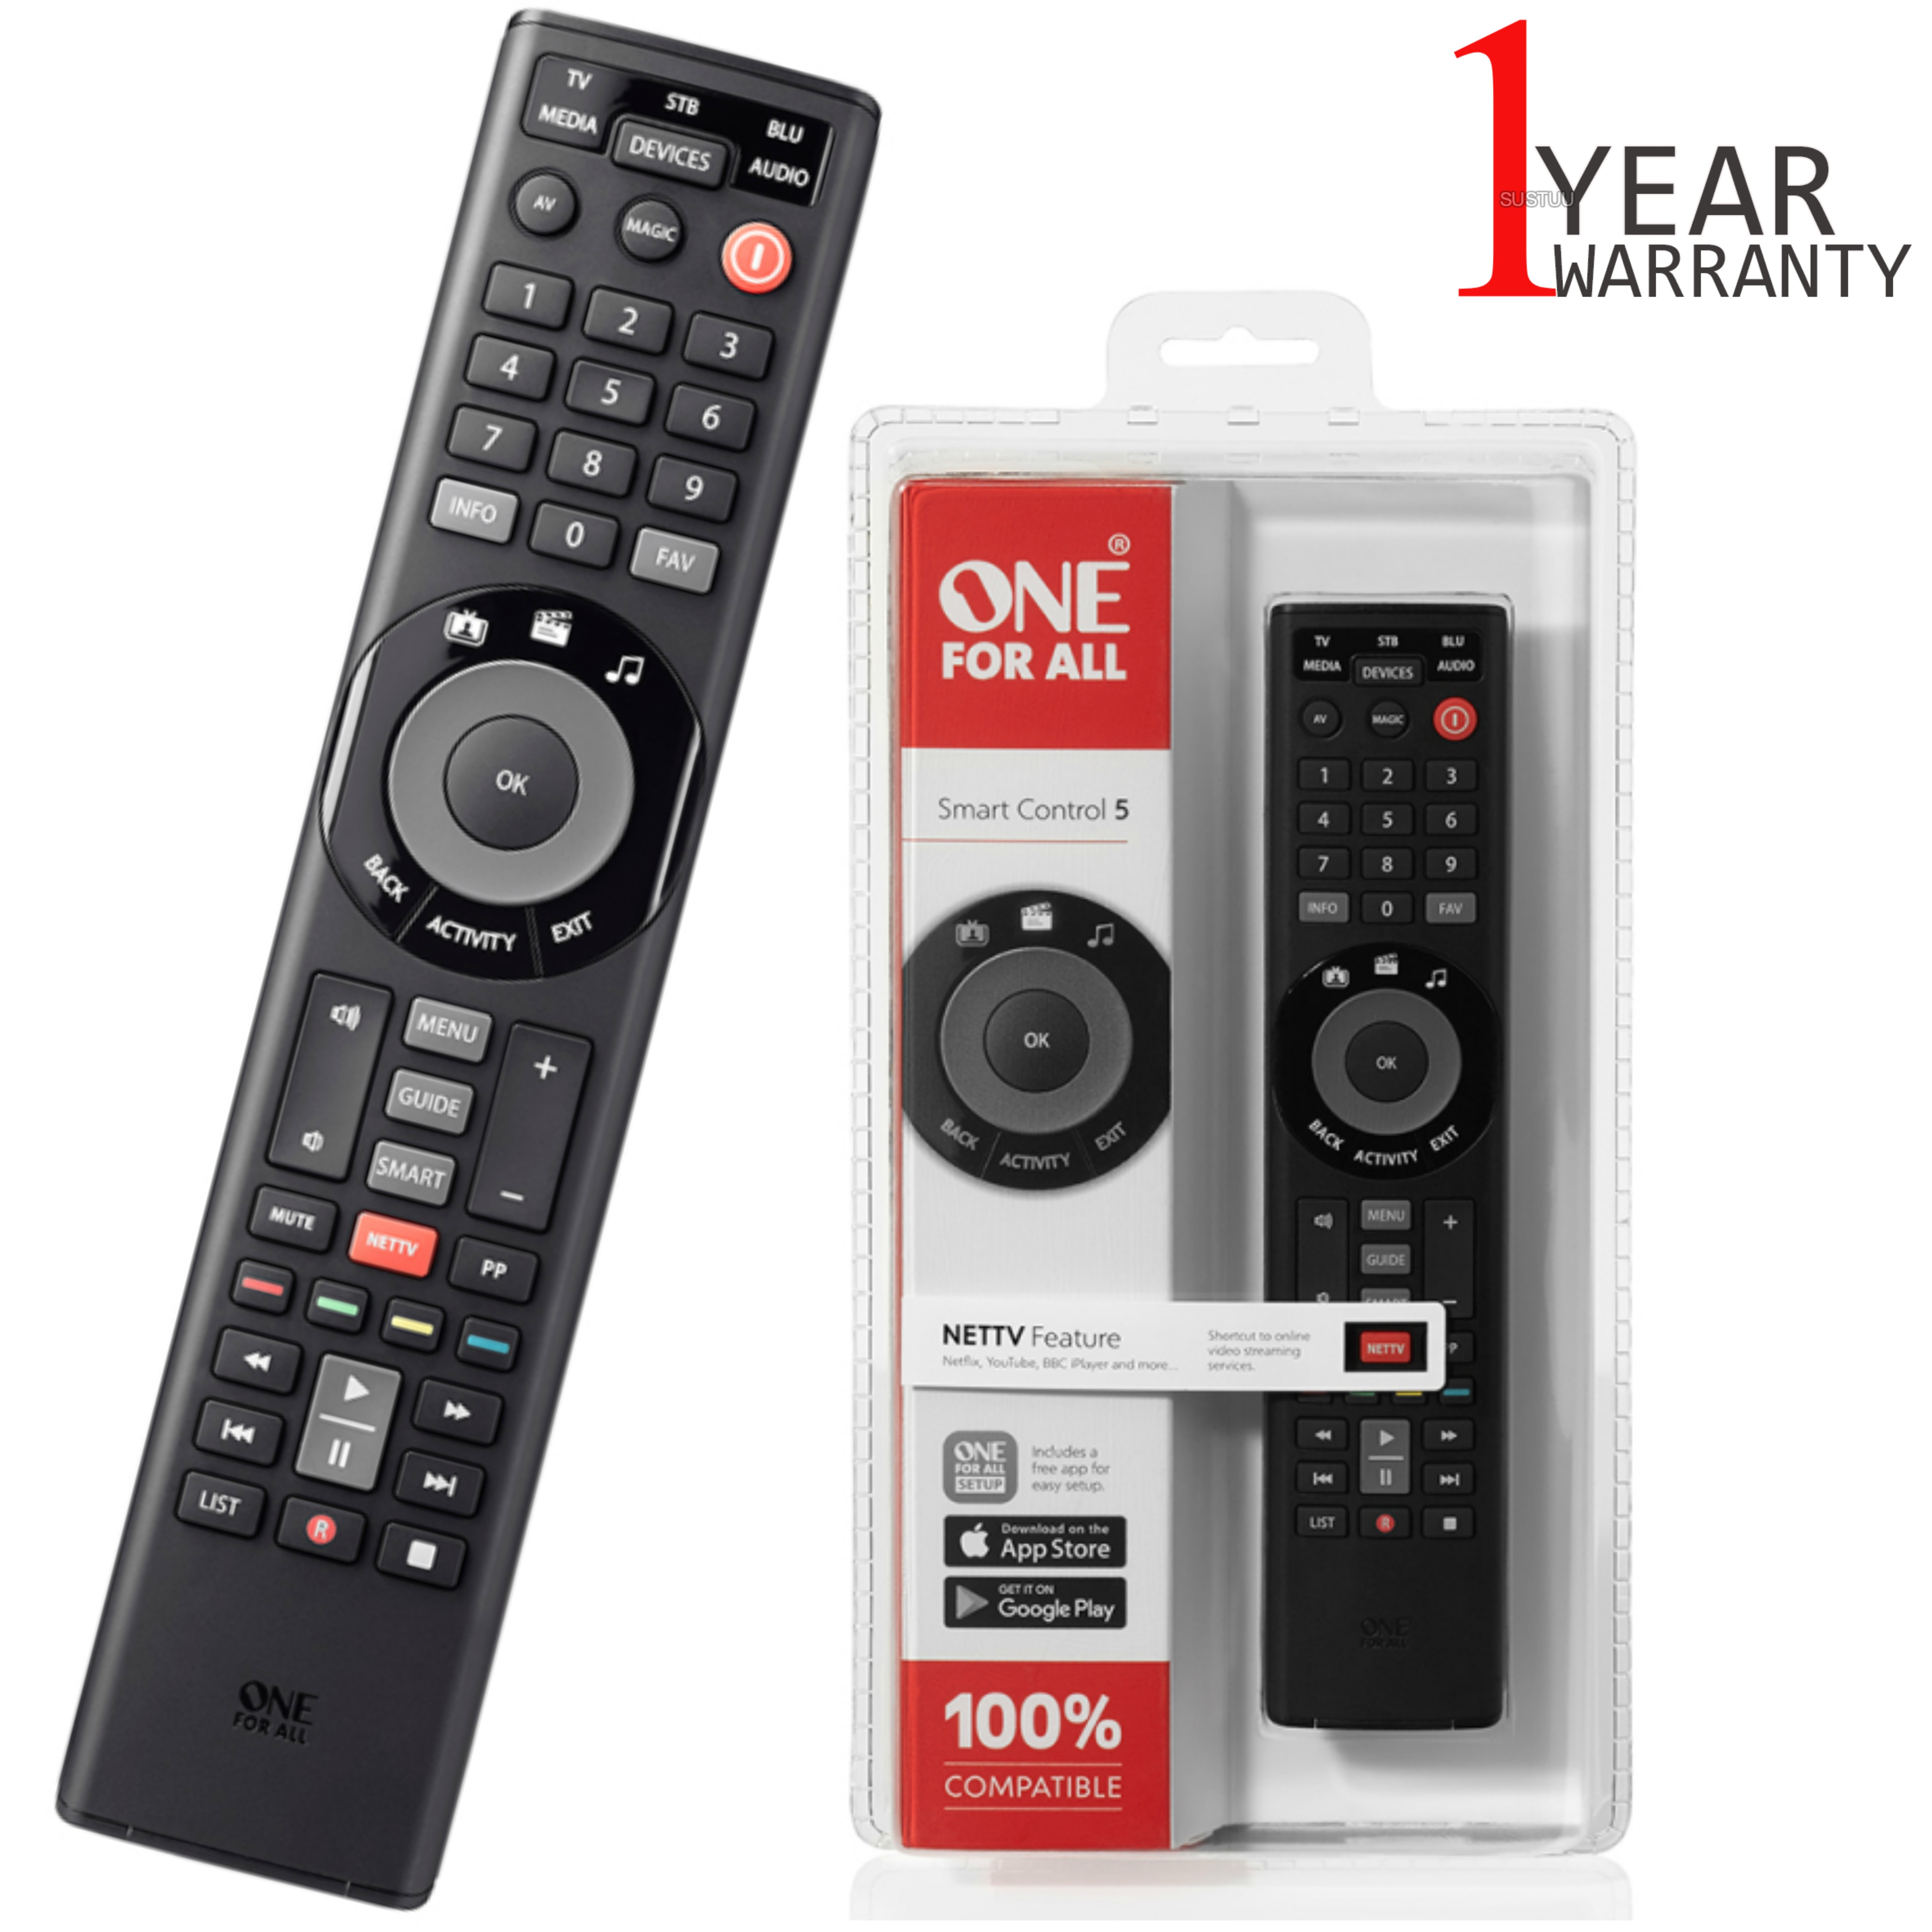 One For All Universal Remote Smart Control | 5 Devices Control | Black | URC7955 | NEW